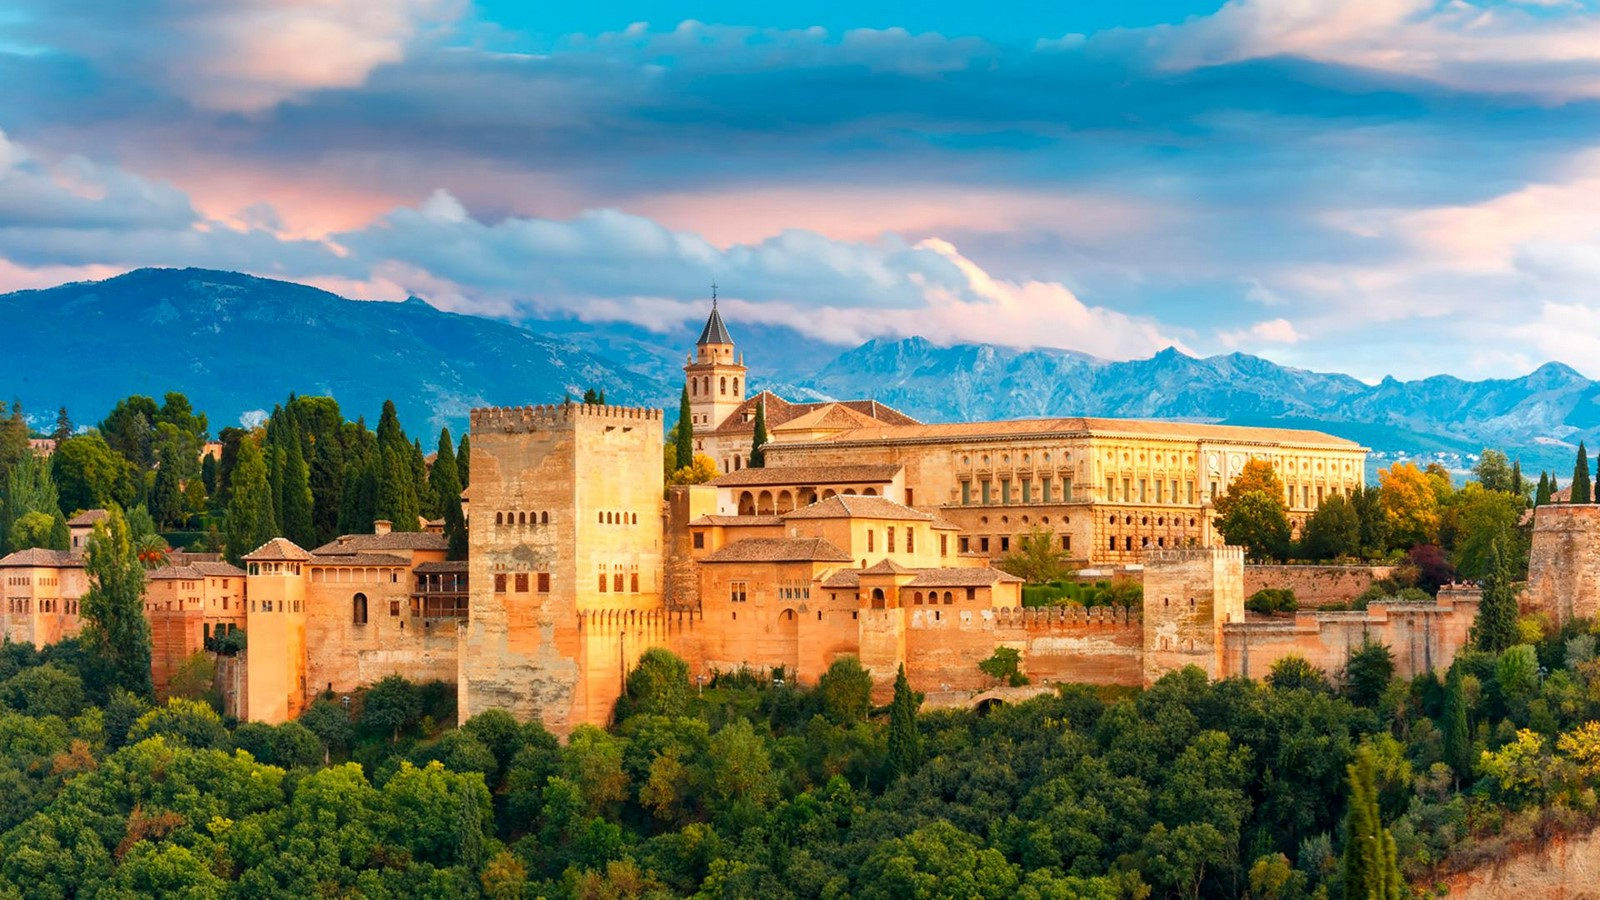 Historicity in Architecture - The Alhambra, Spain - Sheet1